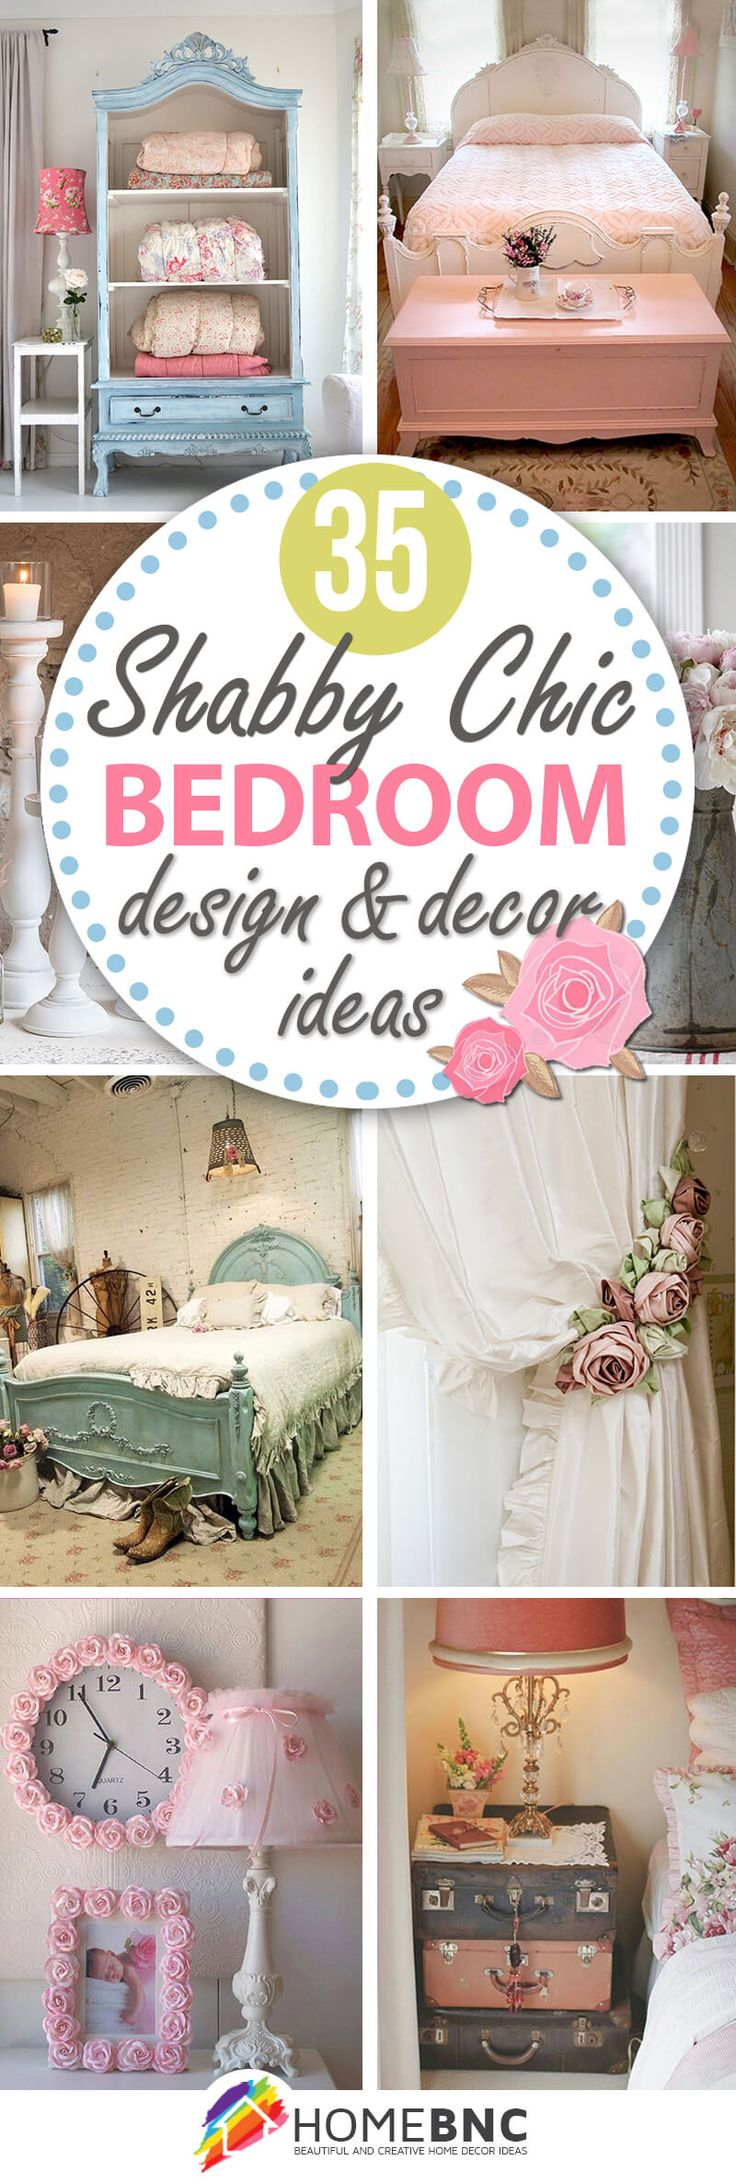 35 amazingly pretty shabby chic bedroom design and decor ideas. Interior Design Ideas. Home Design Ideas